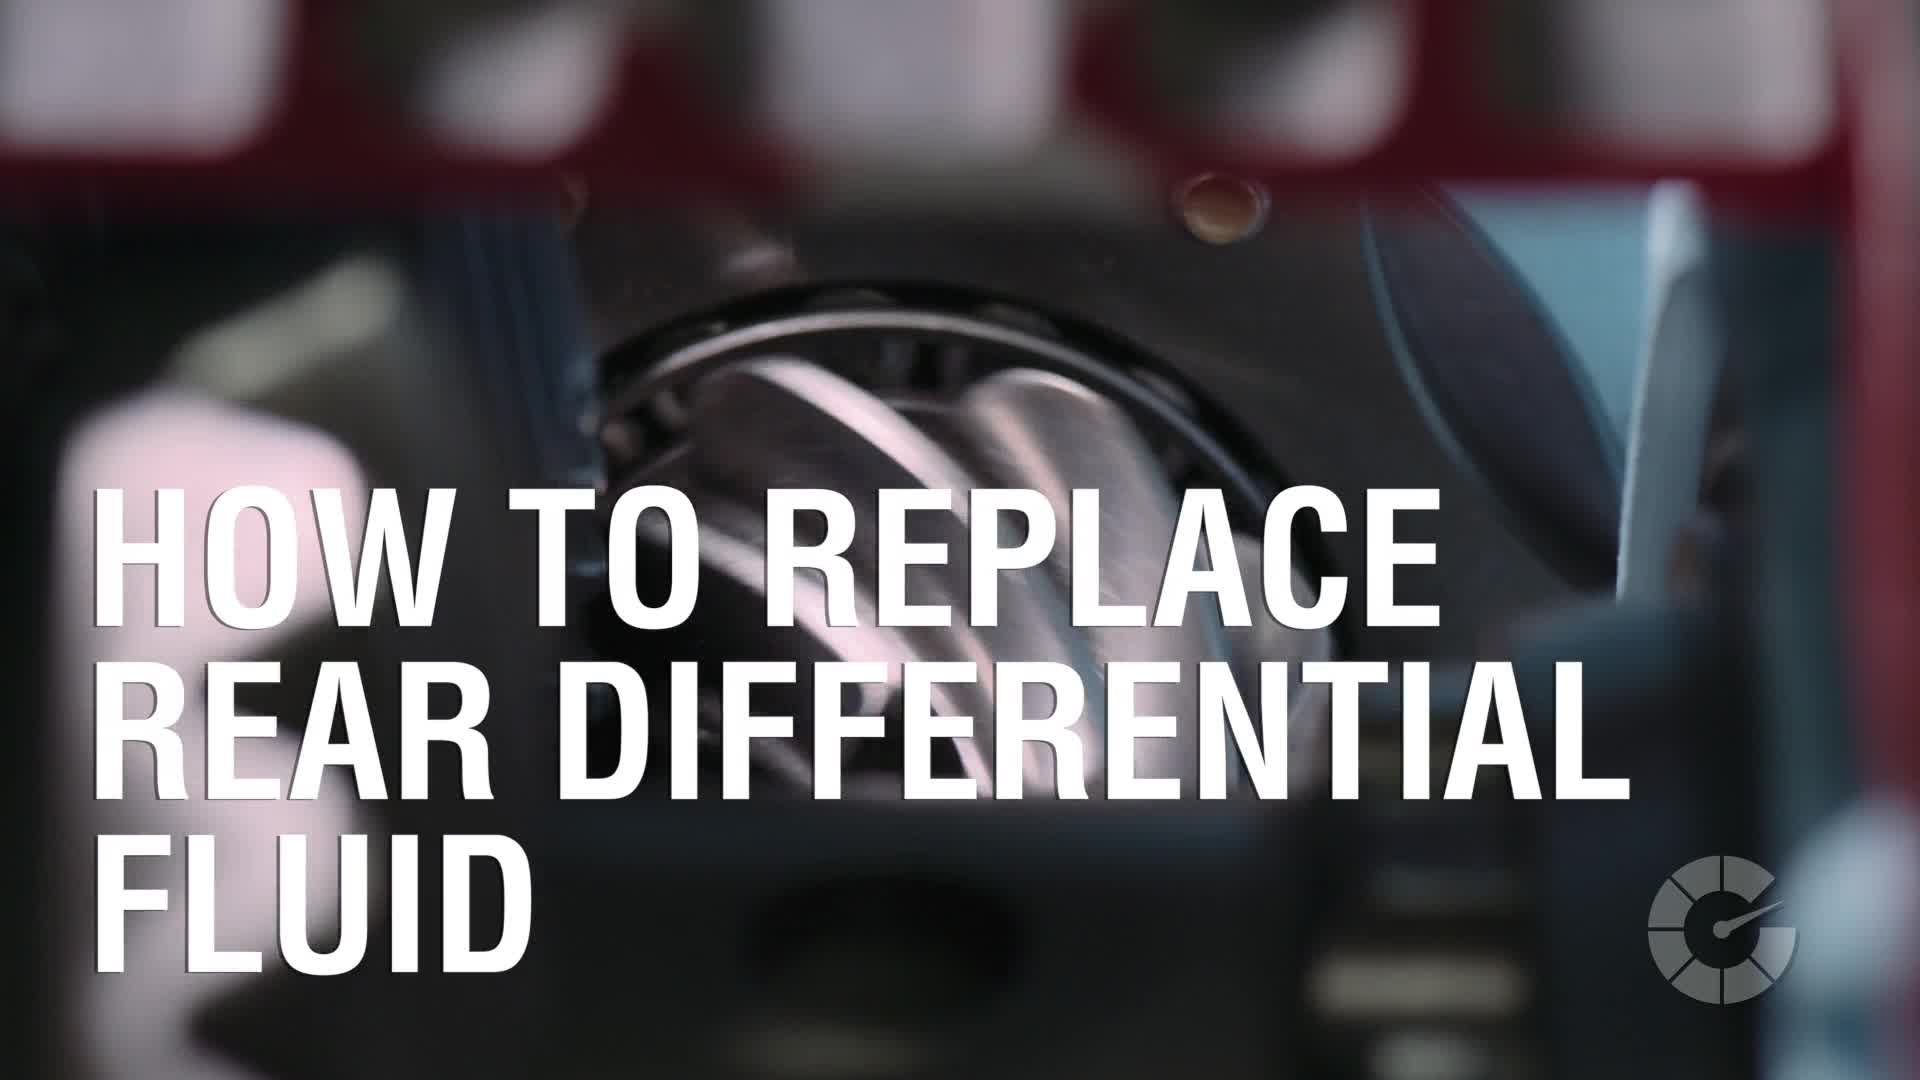 How To Replace Rear Differential Fluid | Autoblog Wrenched